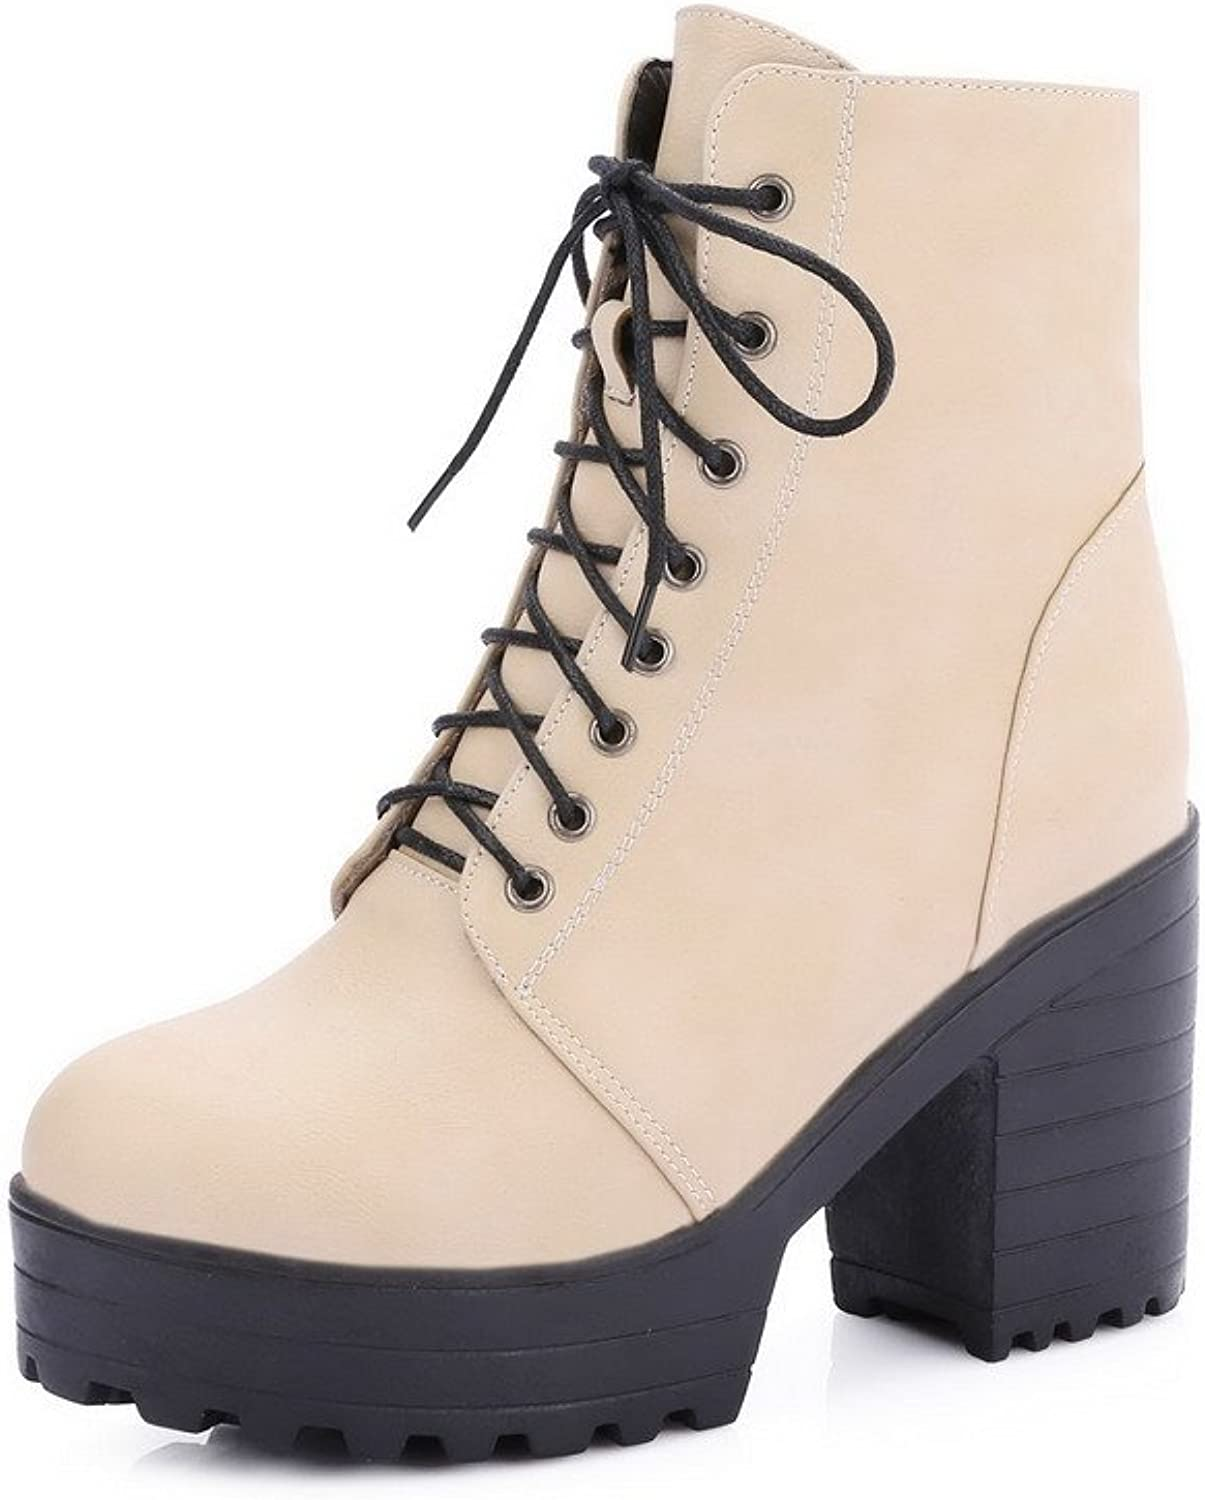 WeenFashion Women's High-Heels Solid Closed Round Toe Soft Material Lace-up Boots